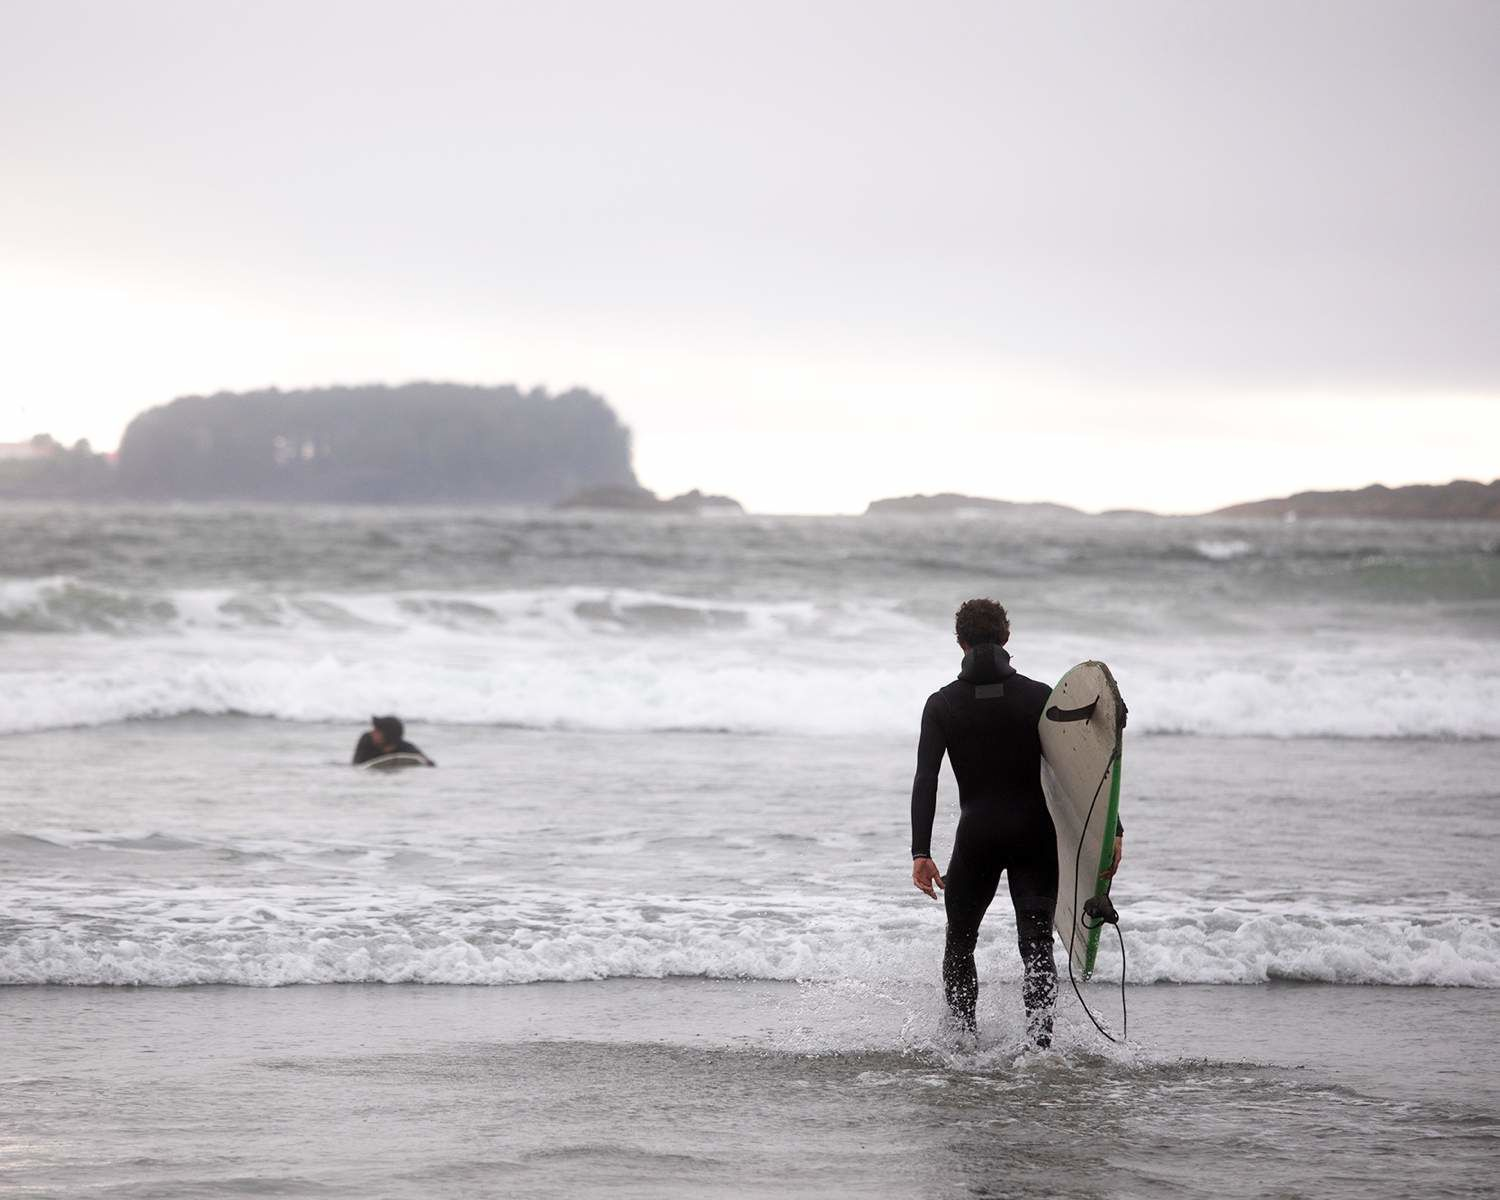 Michael and Pete Devries surfing in Tofino, BC